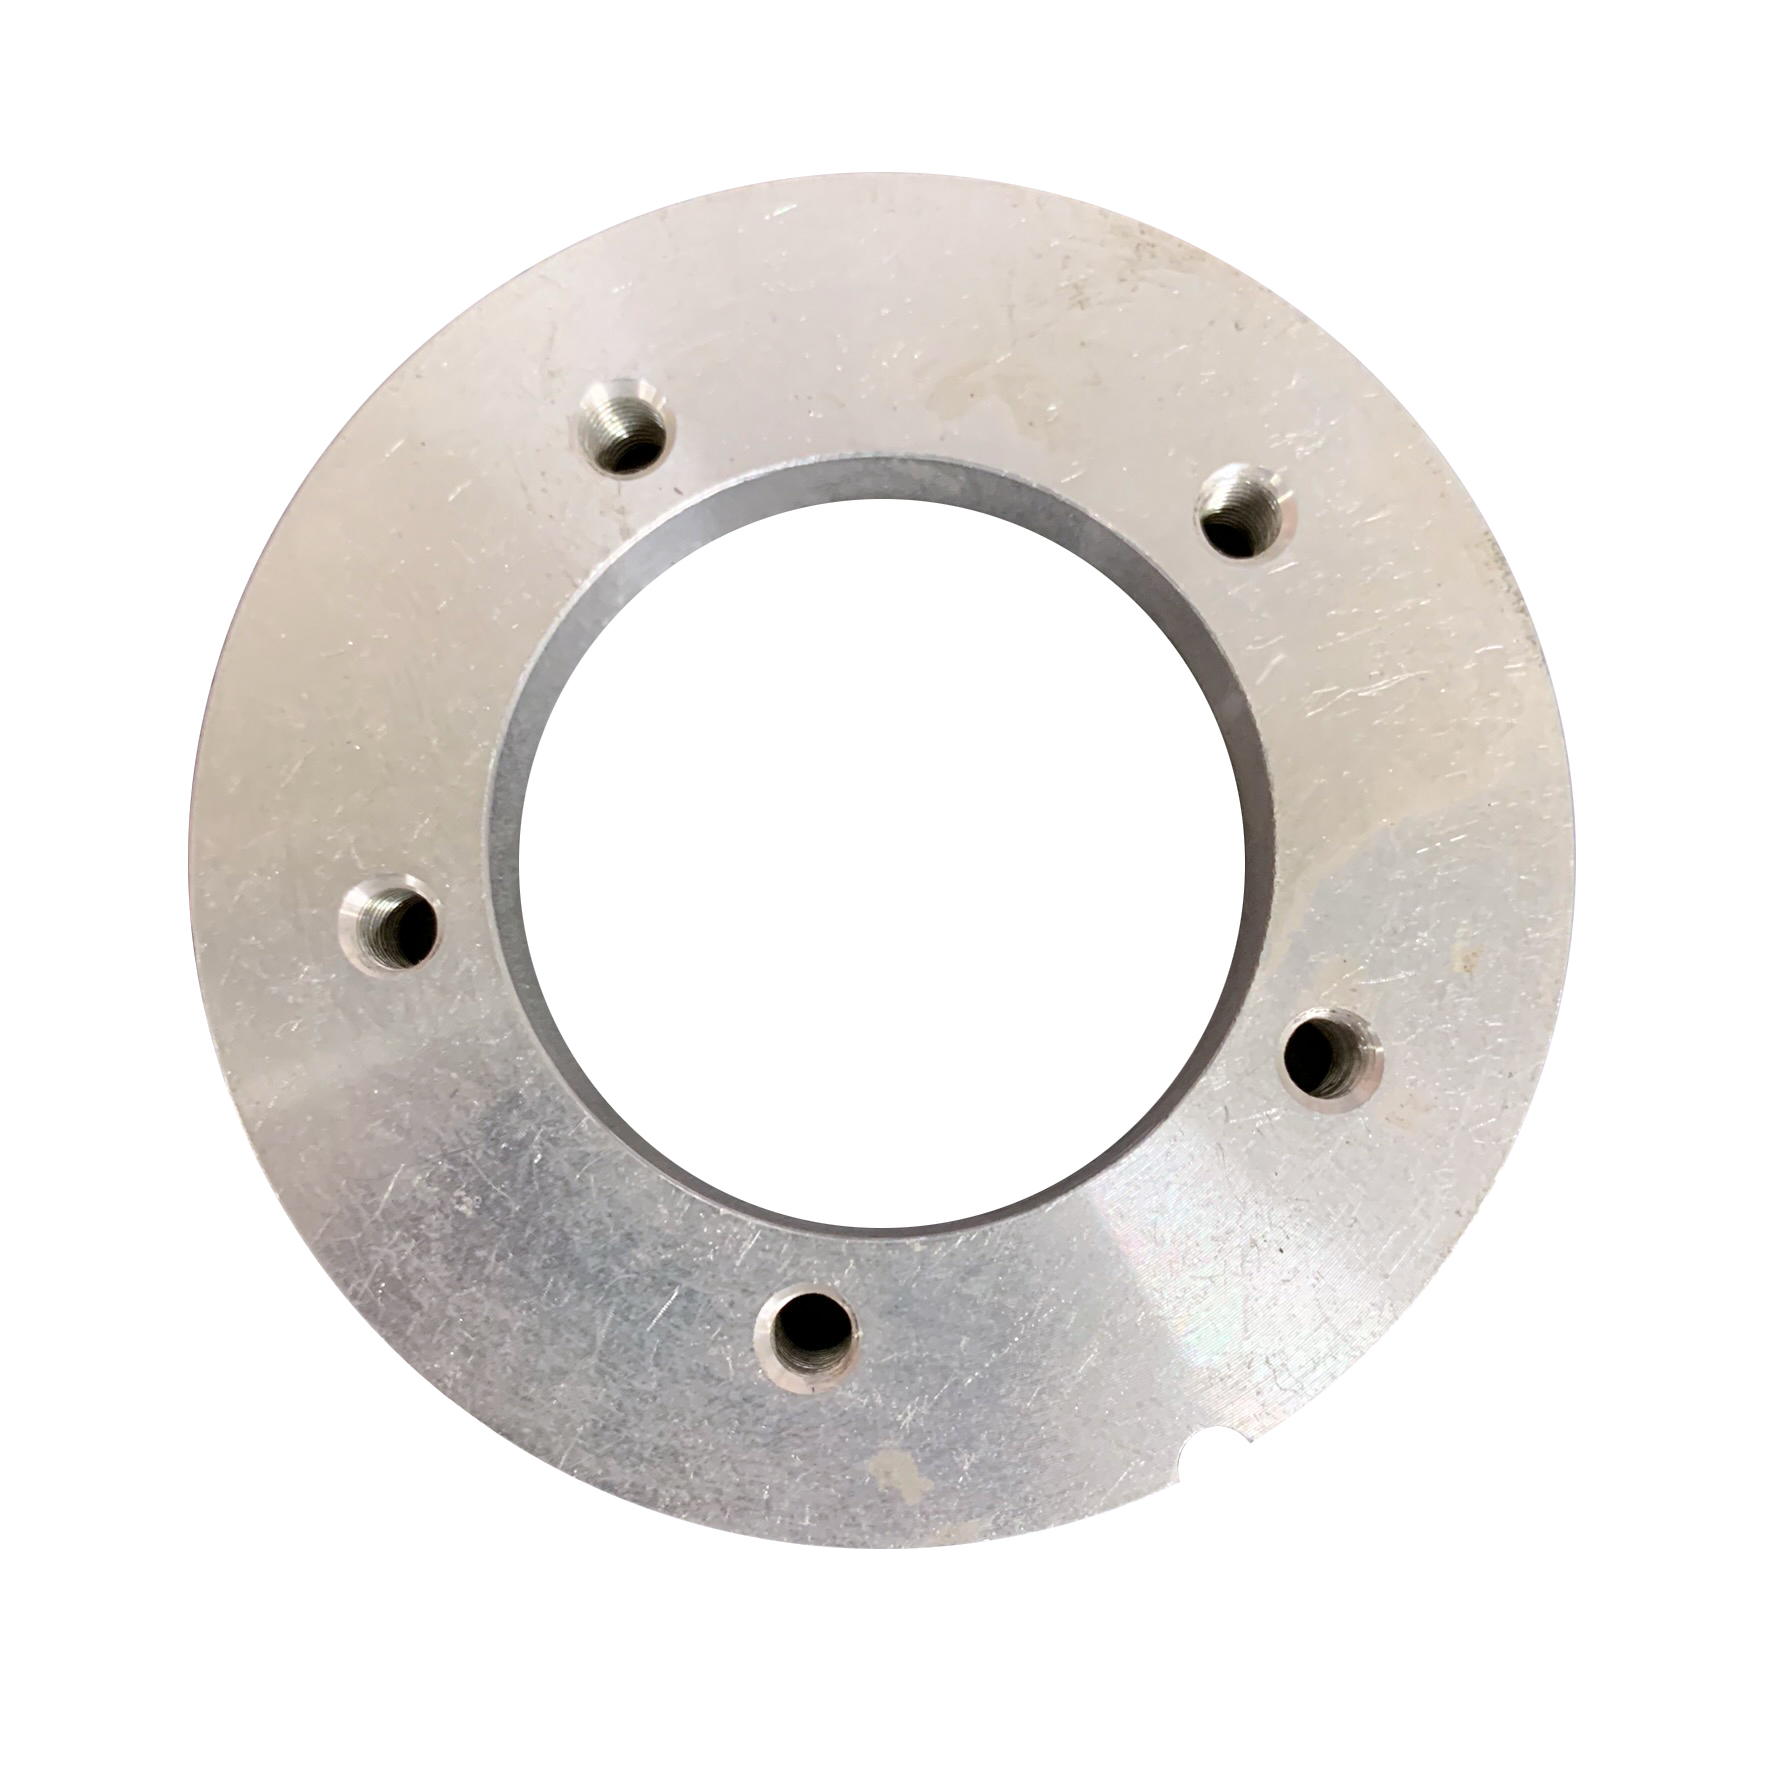 VDO 5-hole flange for encoder